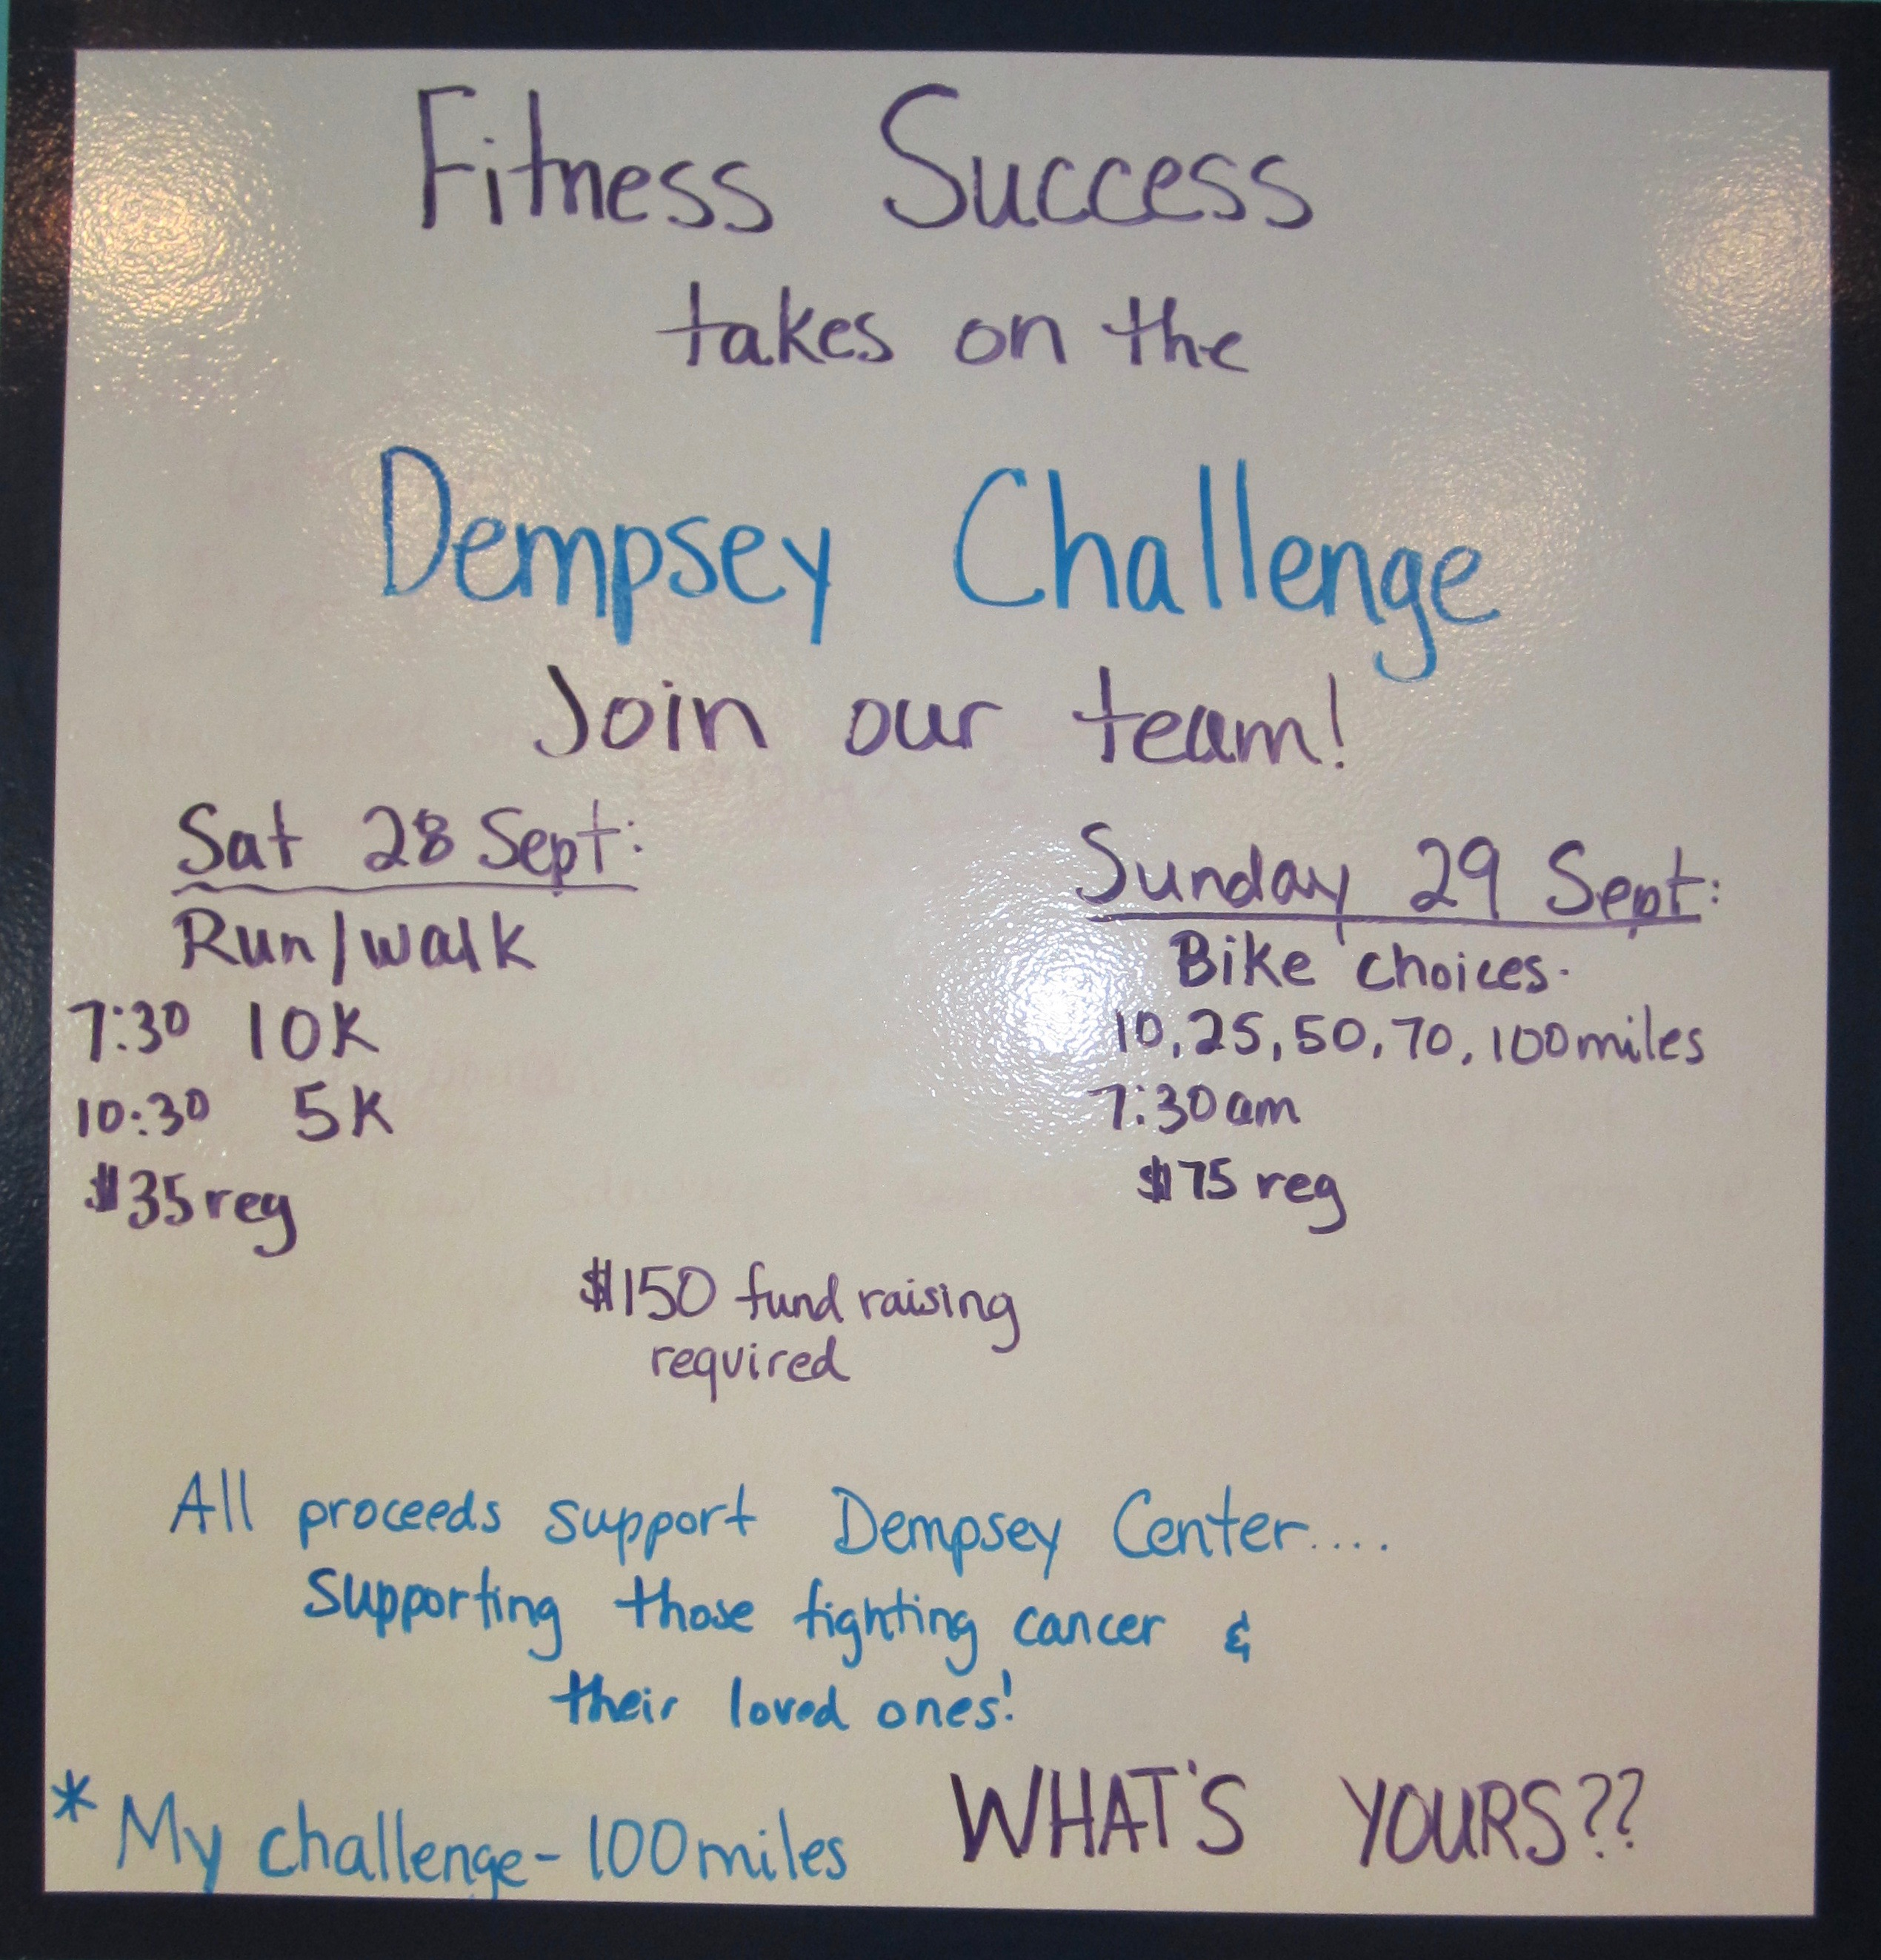 Dempsey Challenge- Join the Fitness Success Team